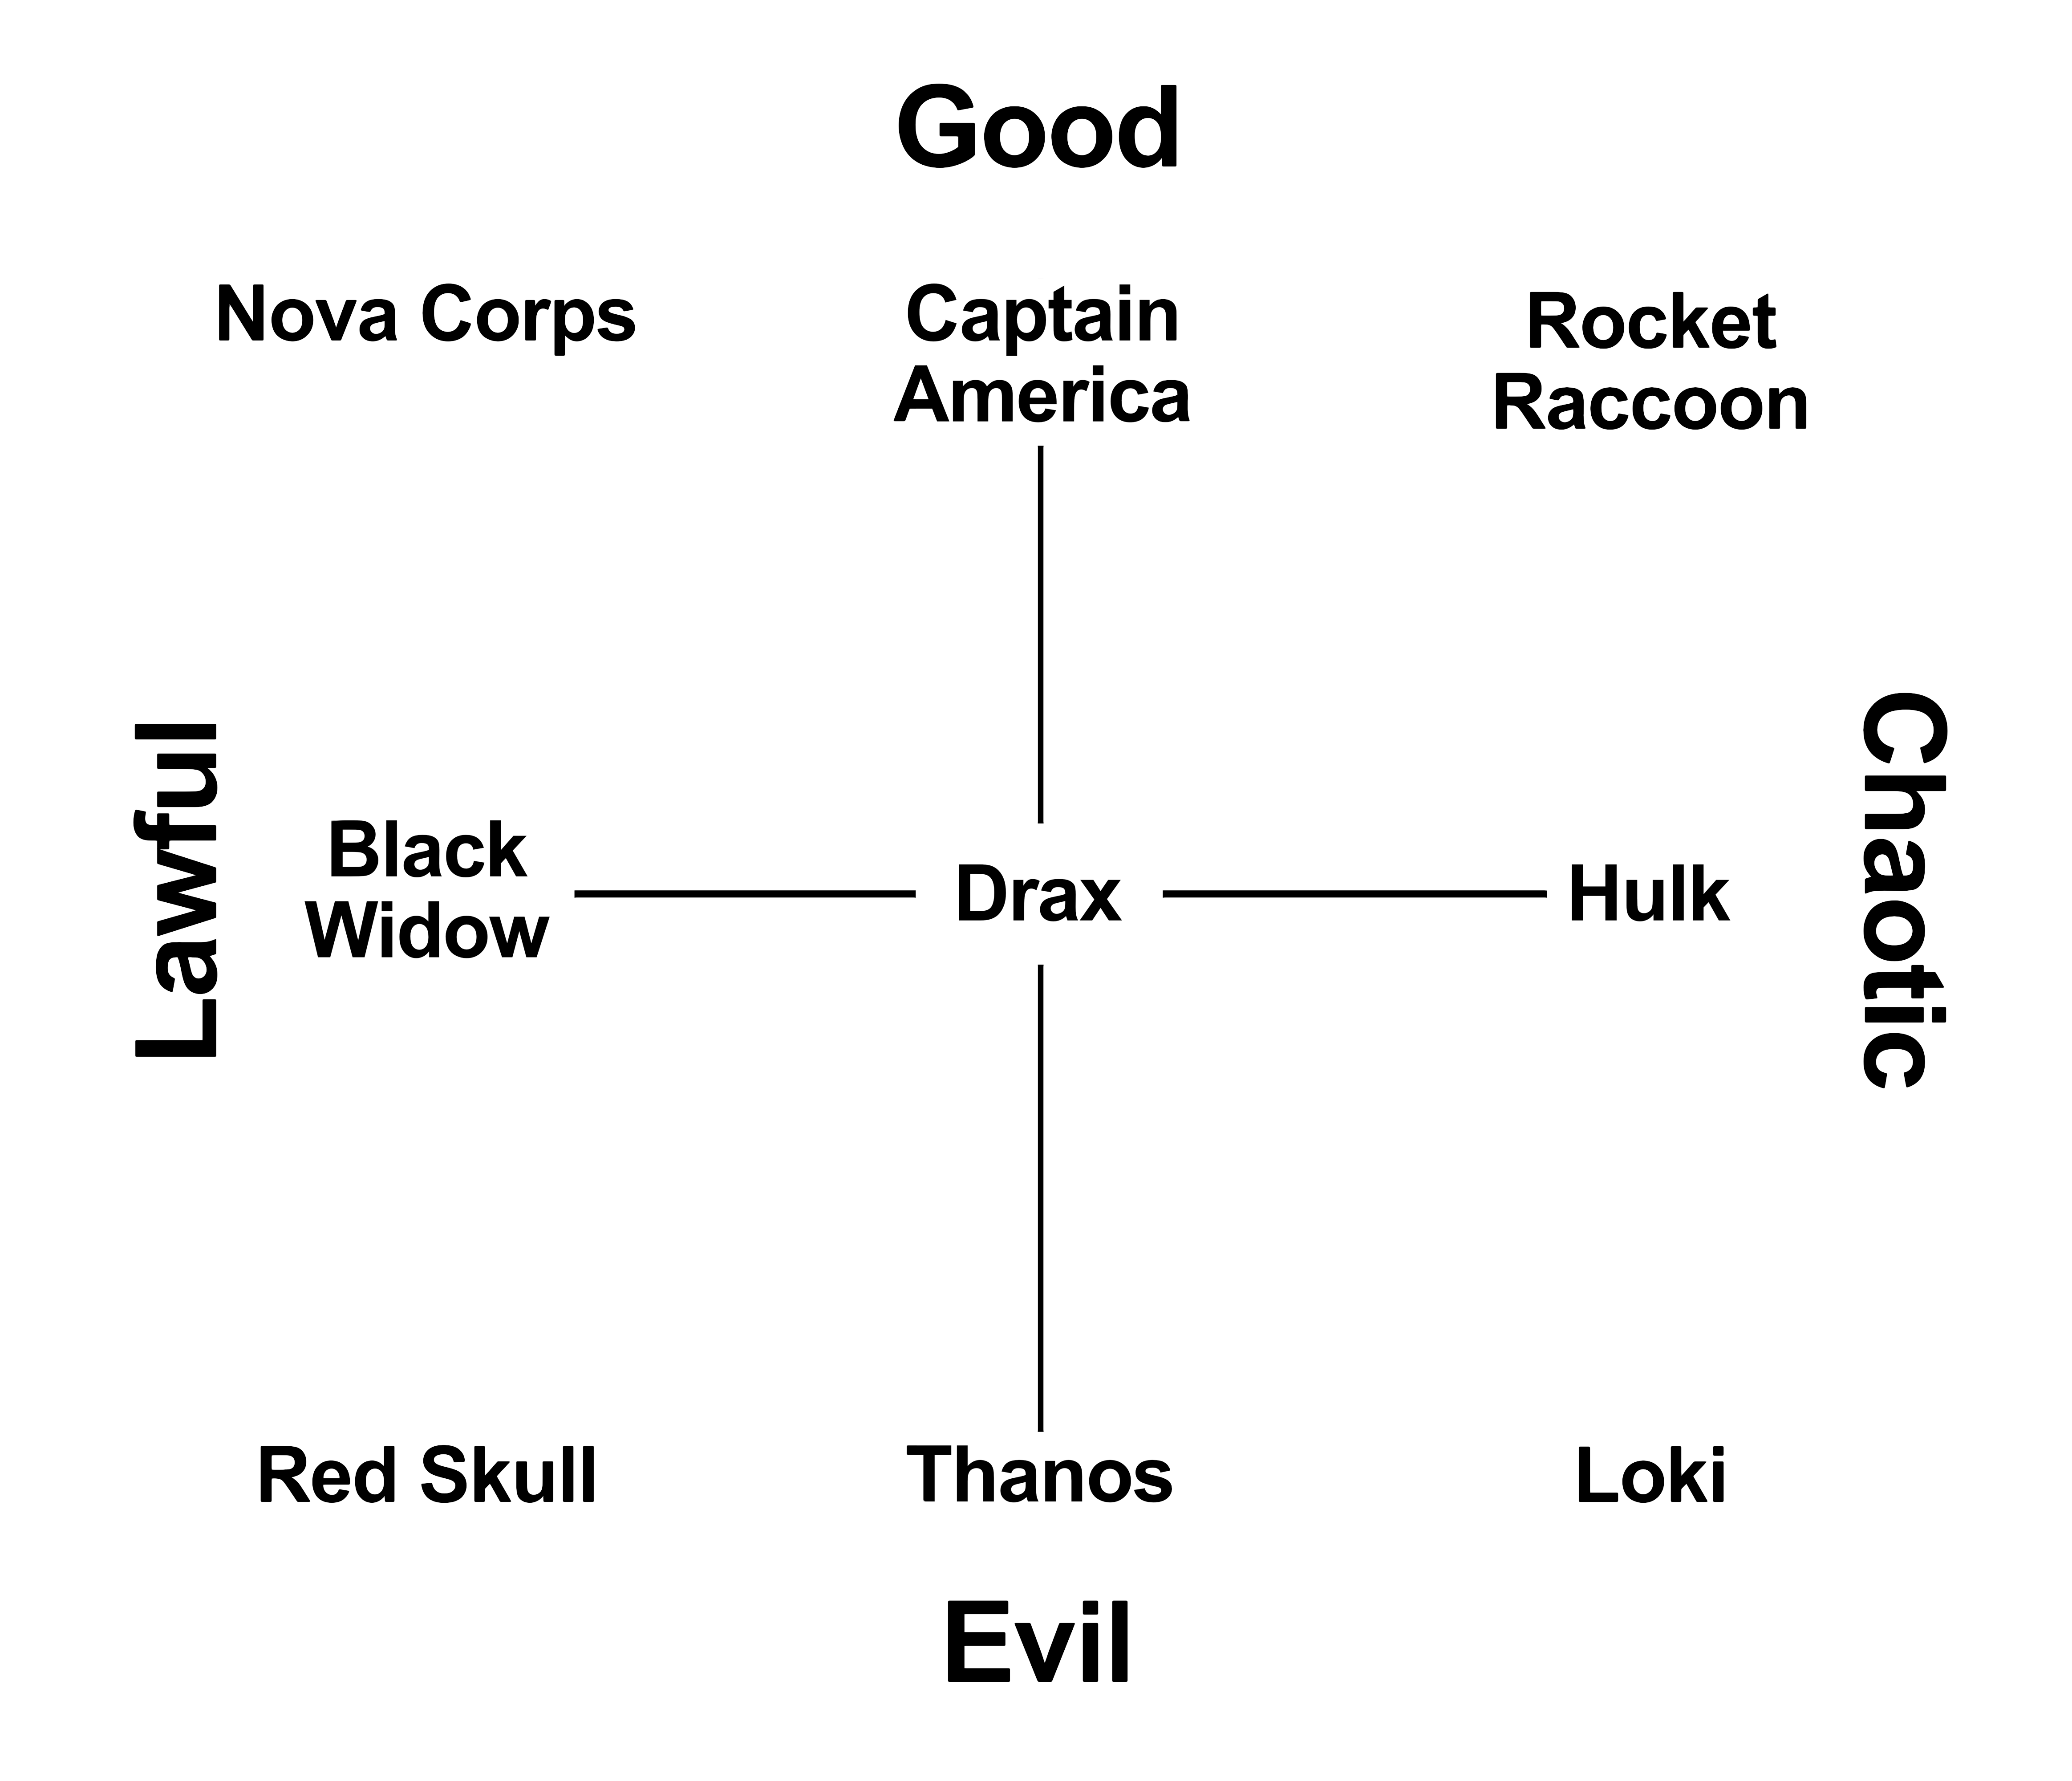 Marvel characters projected onto D&D alignments